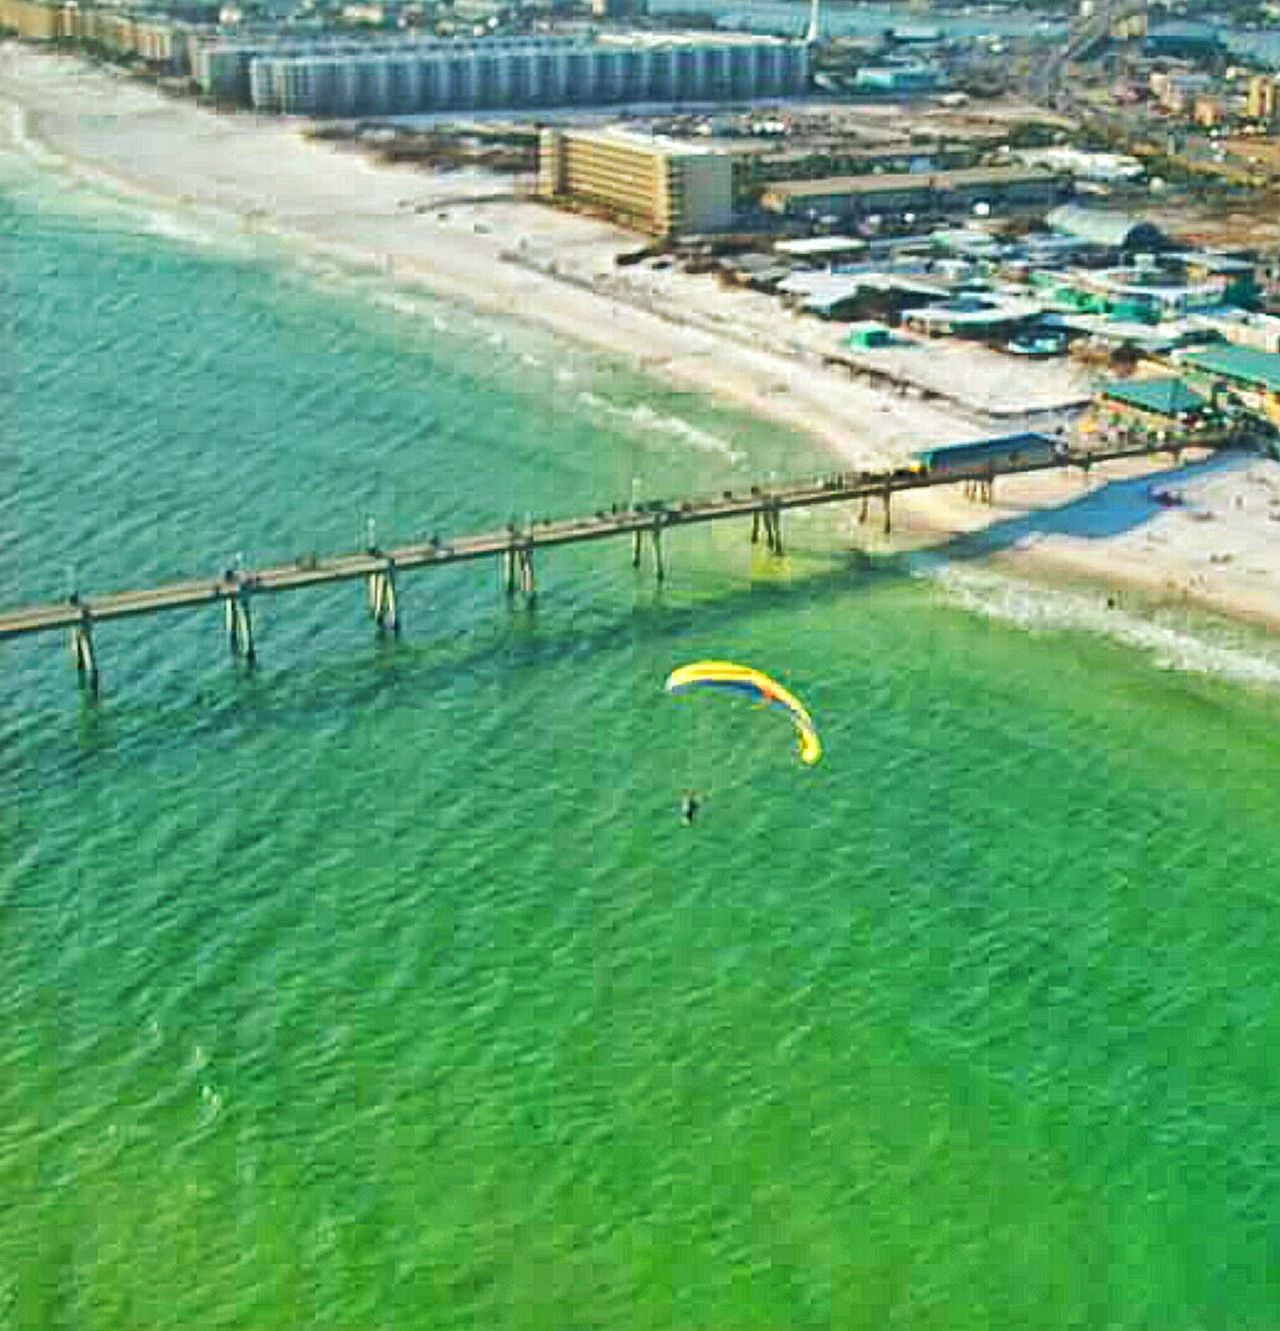 Parasailing Yellow Parachute View From Above Beach Life Bridge Buildings Outdoor Sports Outdoor Activities Daredevil Sky View Beach Photography People On The Beach Florida Bridge Over Ocean Green Water Air Sports Long Bridge Aerial View Aerial Photography The Essence Of Summer People Of The Oceans Fort Walton Beach Florida, Usa. A Birds Eye View Aerial